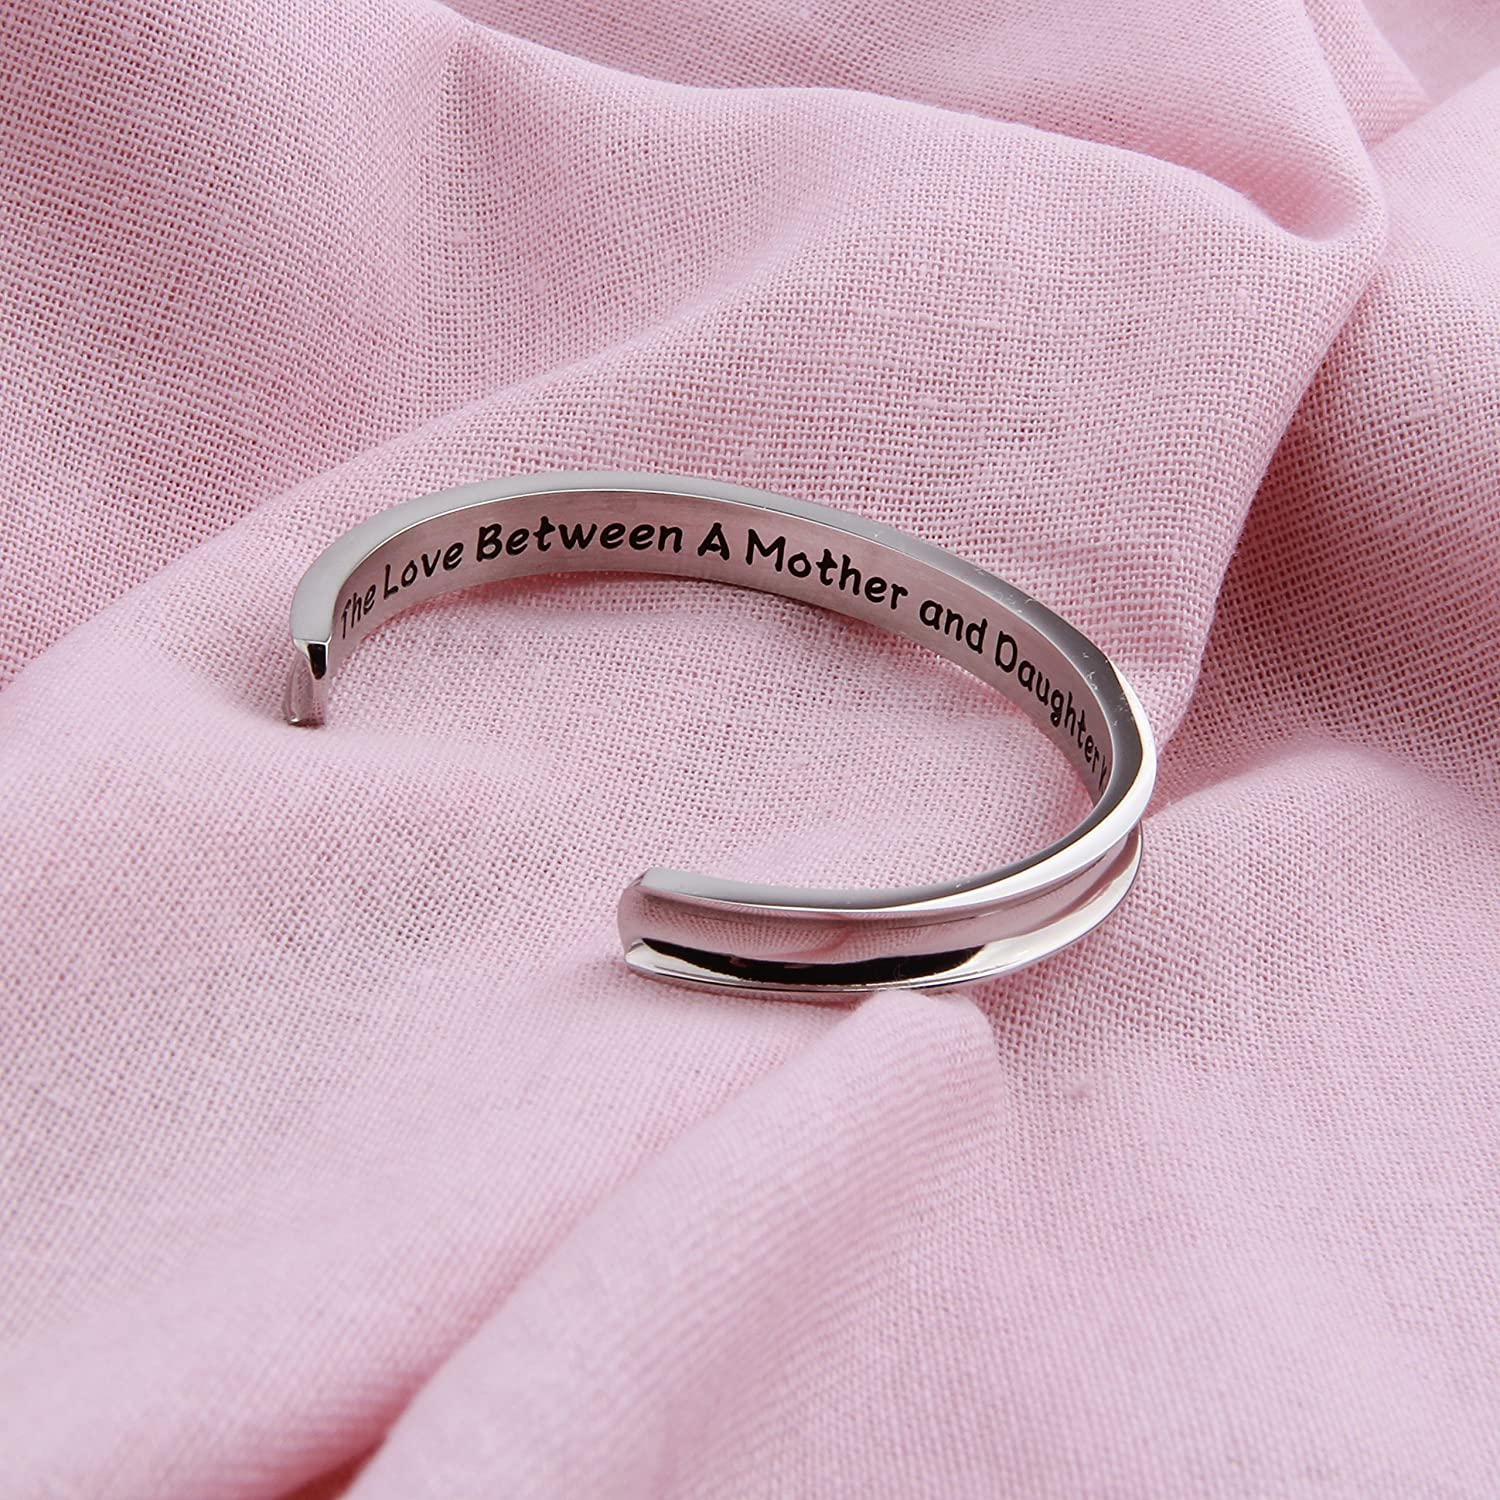 Hair Tie Bracelet The Love Between A Mother and Daughter Knows No Distance Mother Bracelet Mothers Day Gift